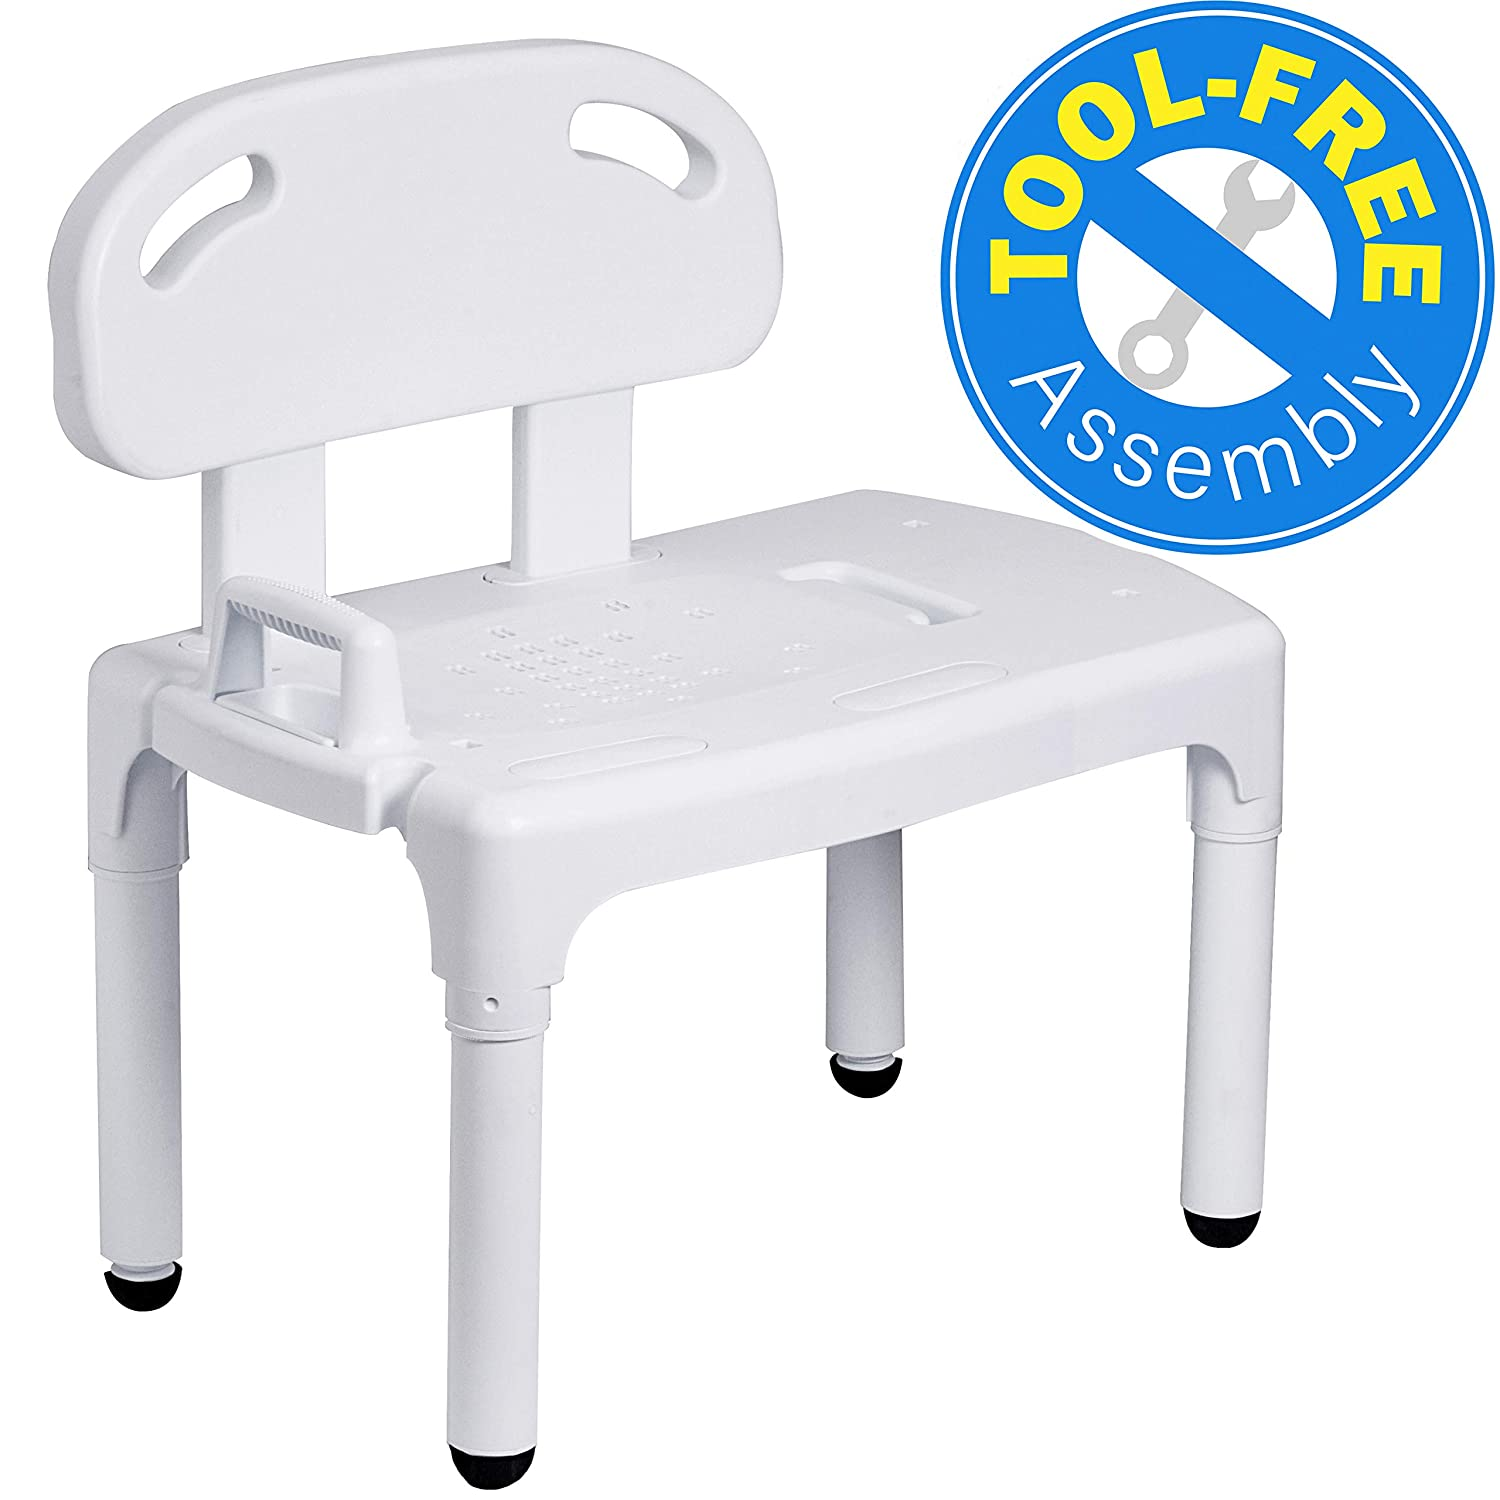 Bathtub and Shower Transfer Bench Chair with Exact Level Patented Height Adjustment 814icwvVU9L._SL1500_